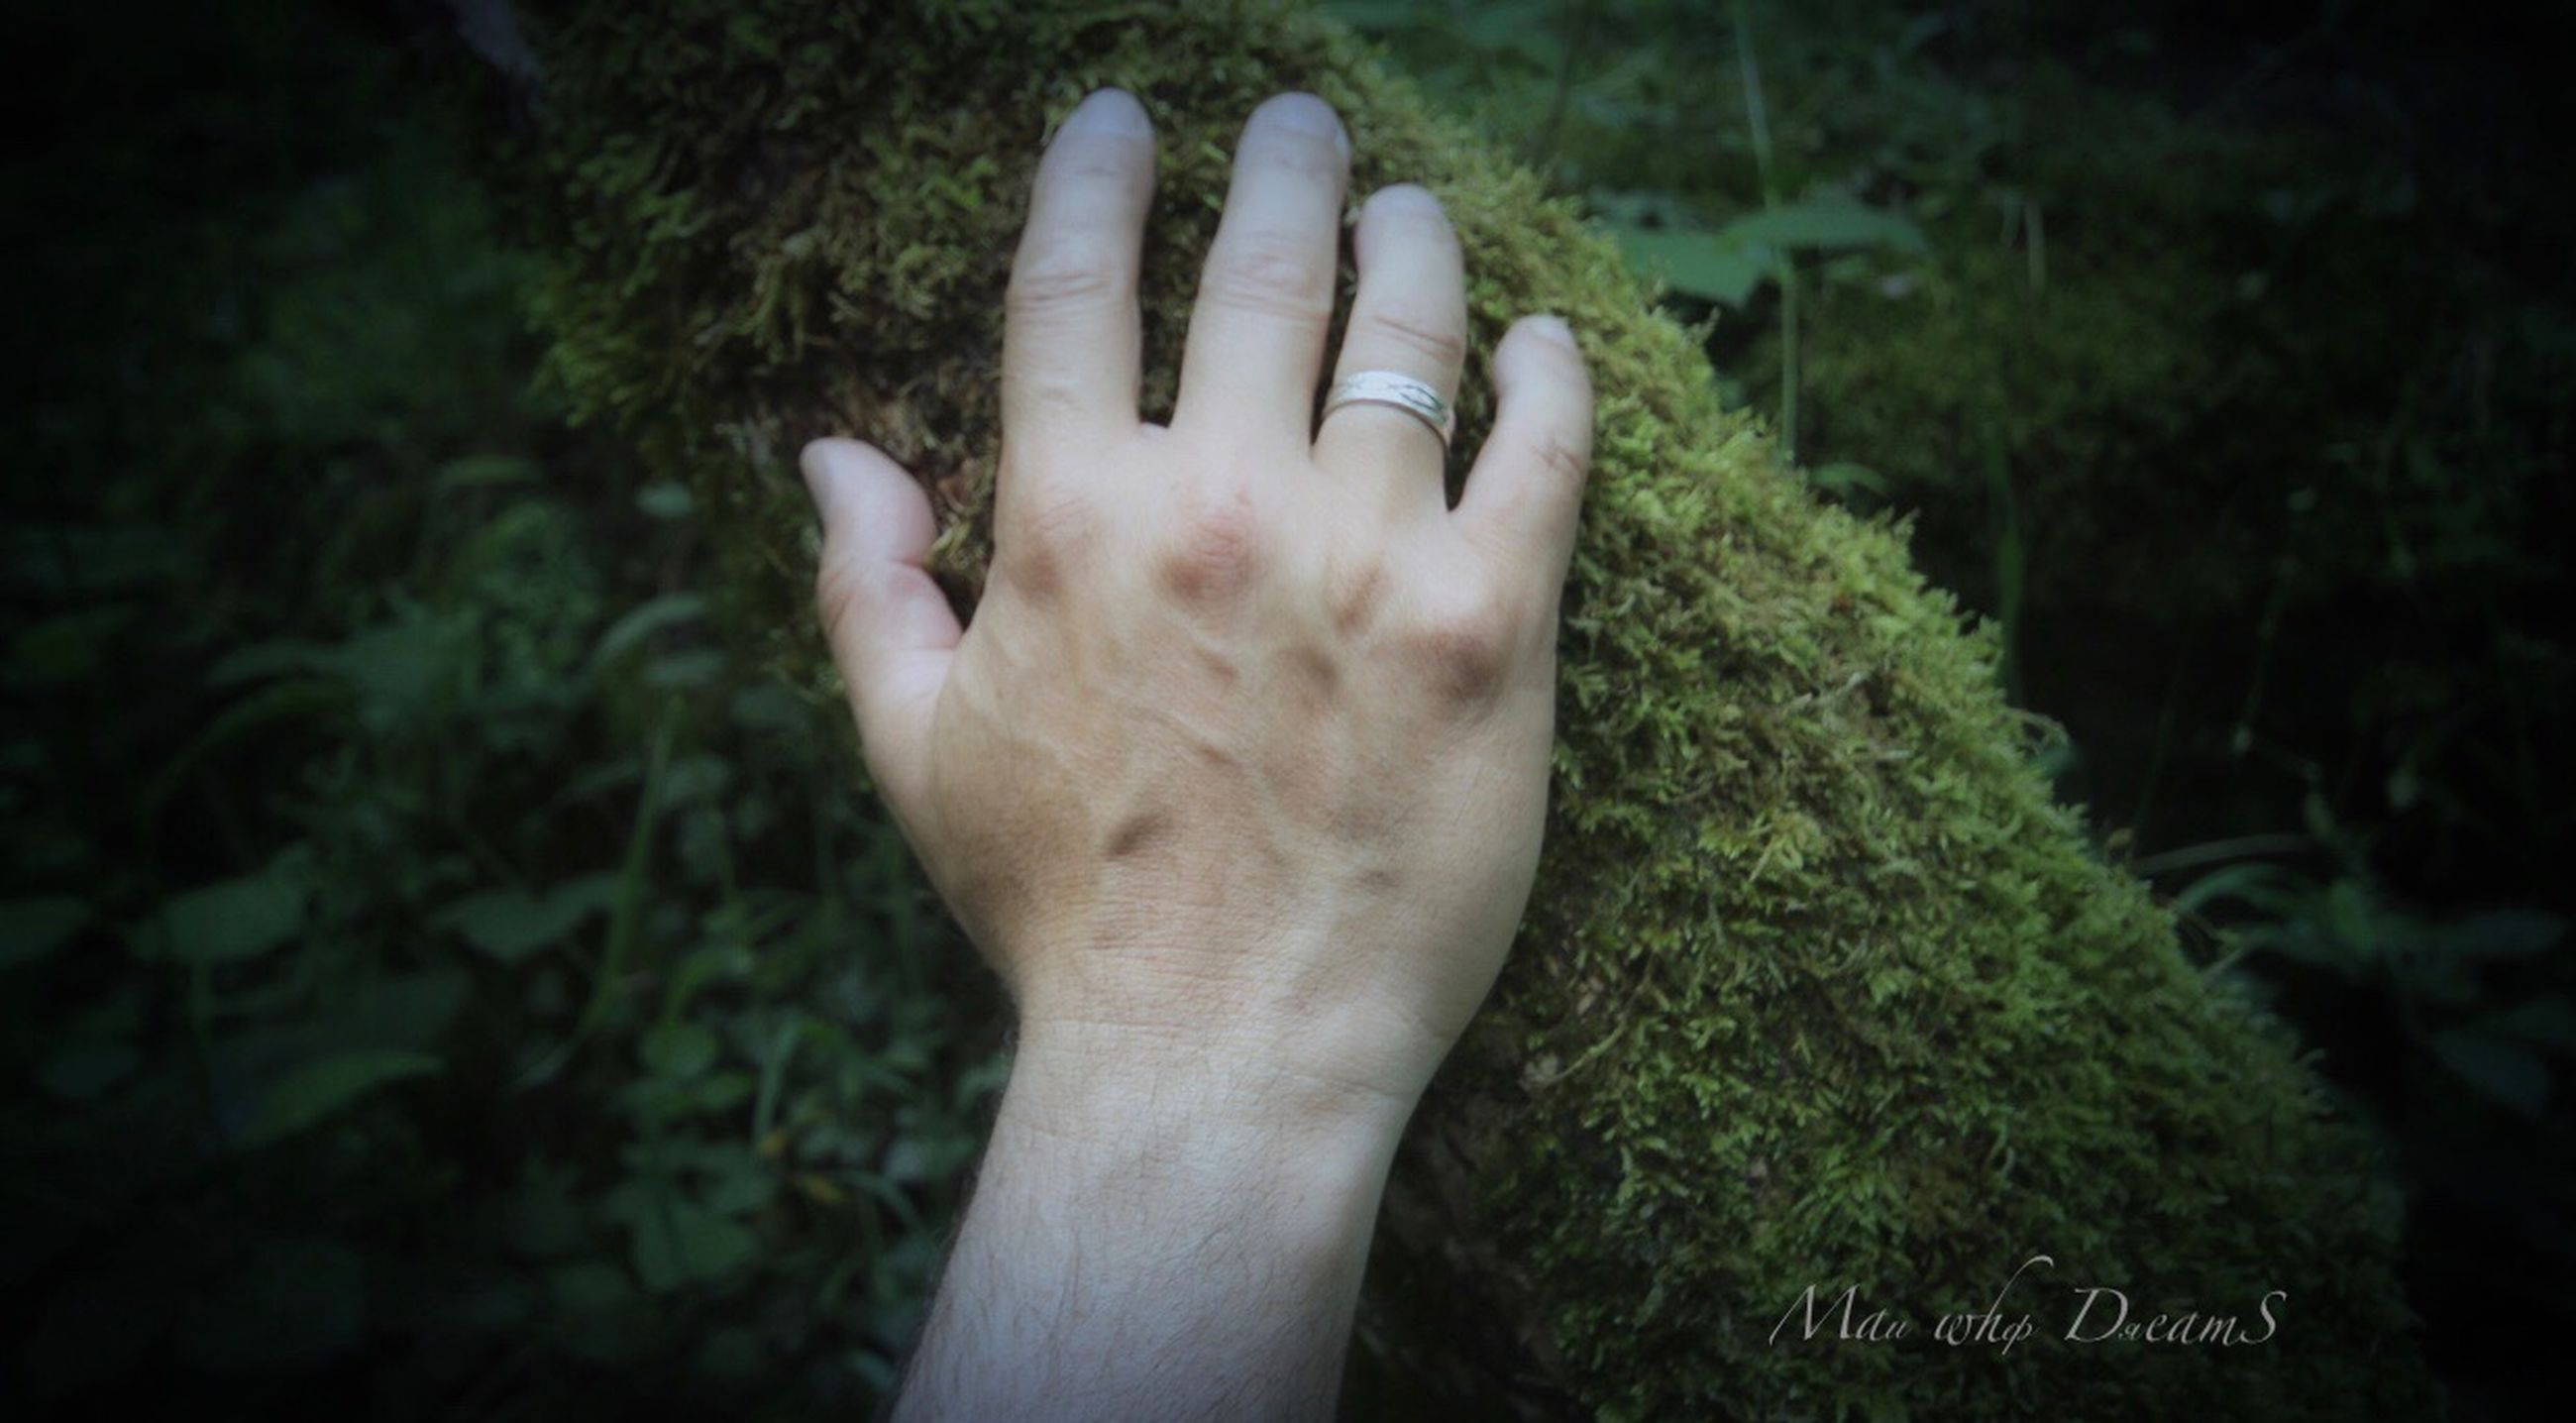 human hand, hand, human body part, one person, real people, body part, plant, personal perspective, day, human finger, lifestyles, finger, nature, focus on foreground, leisure activity, unrecognizable person, tree, close-up, outdoors